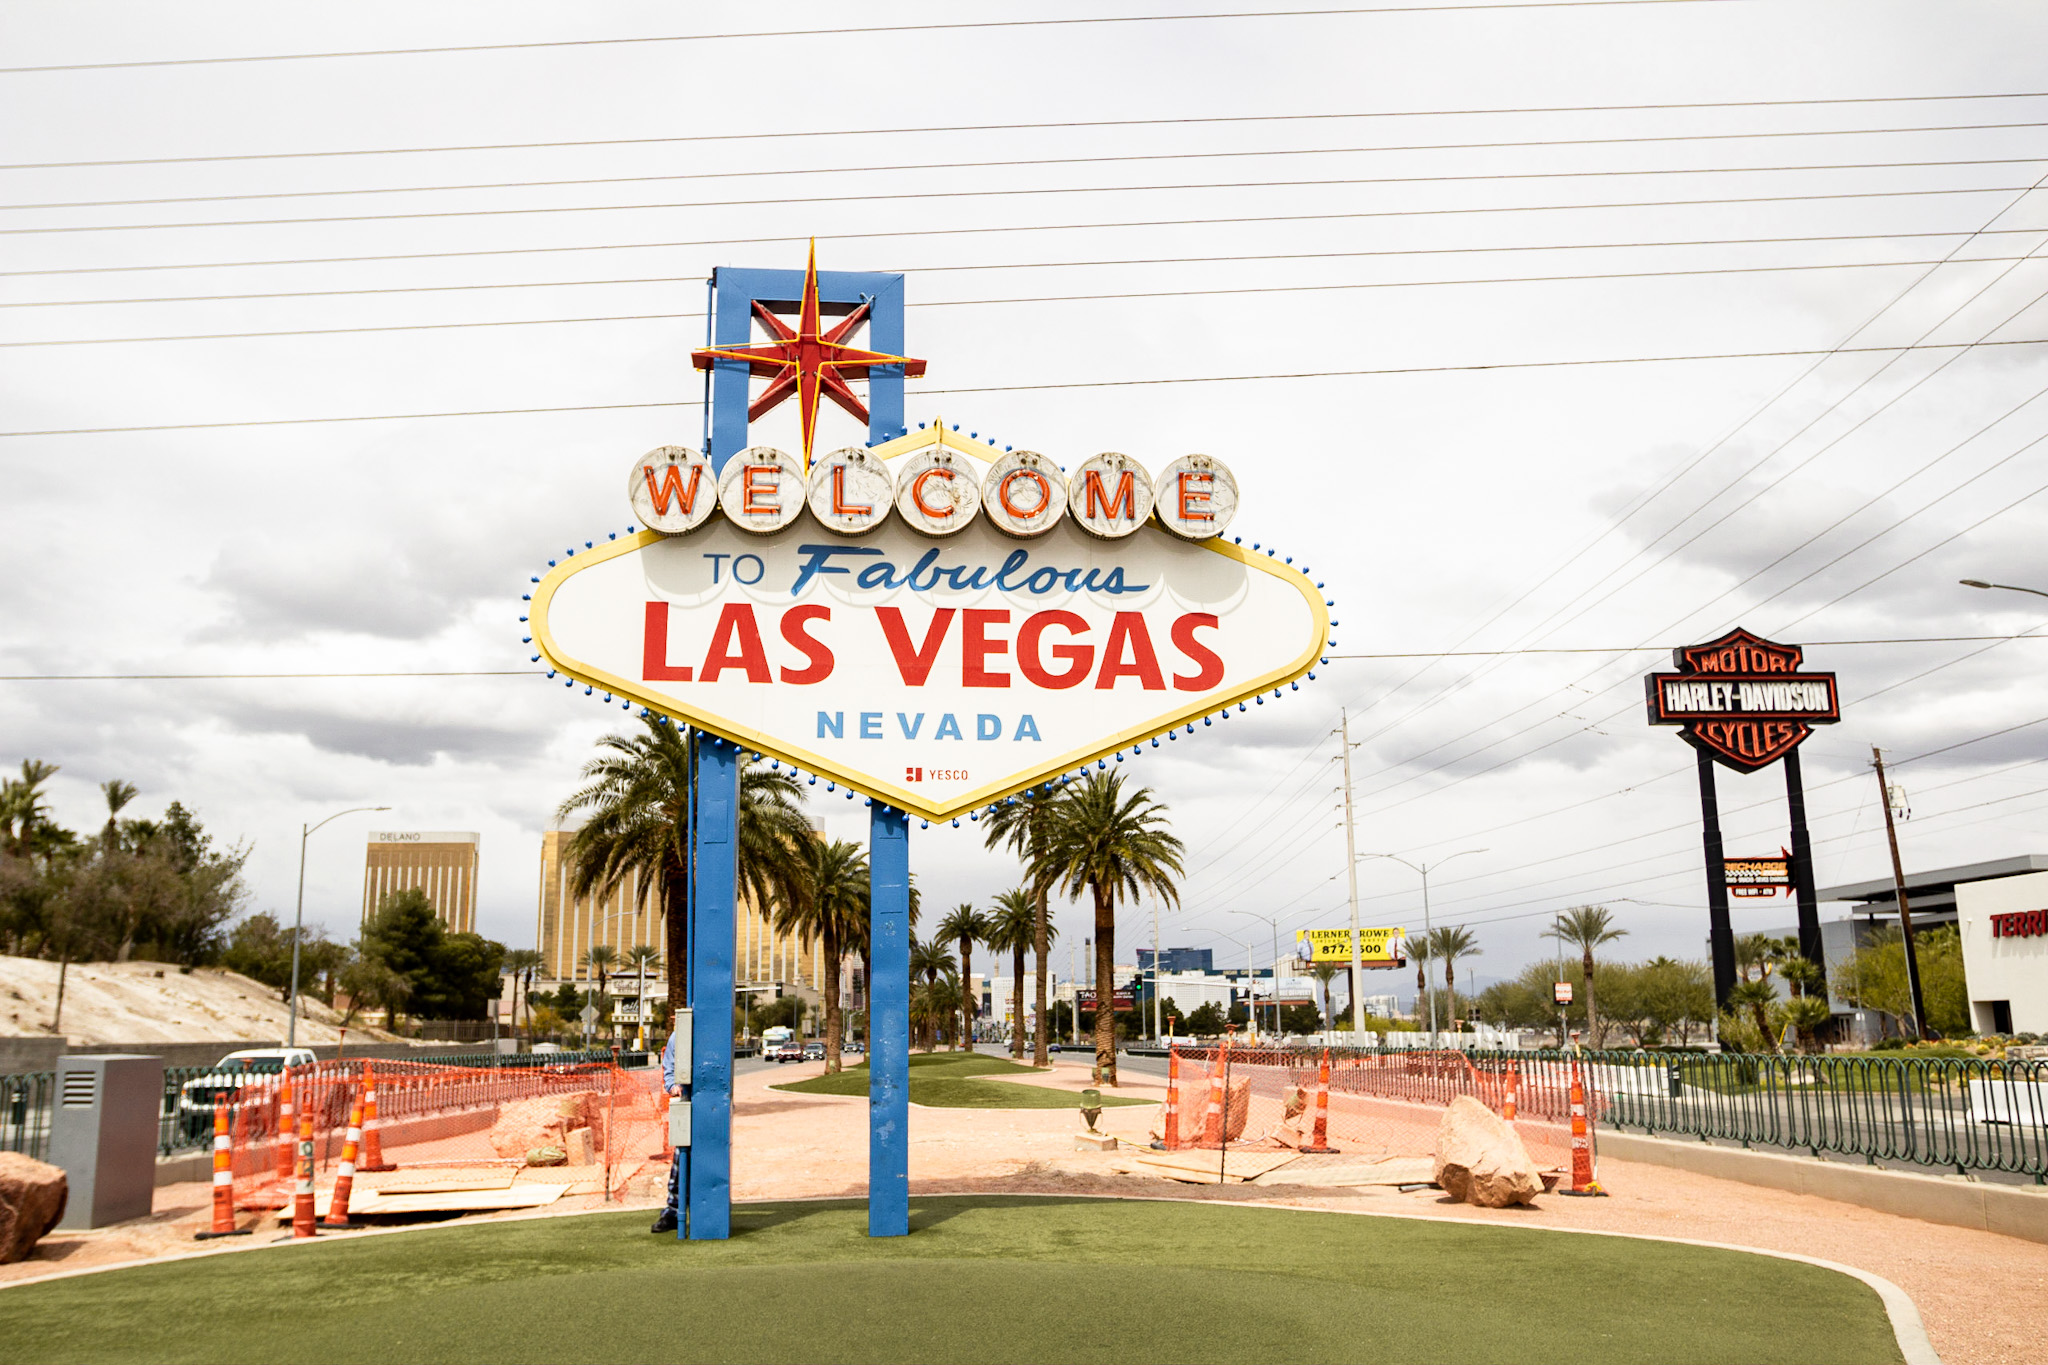 Las Vegas Itinerary – 4 Days in Sin City!